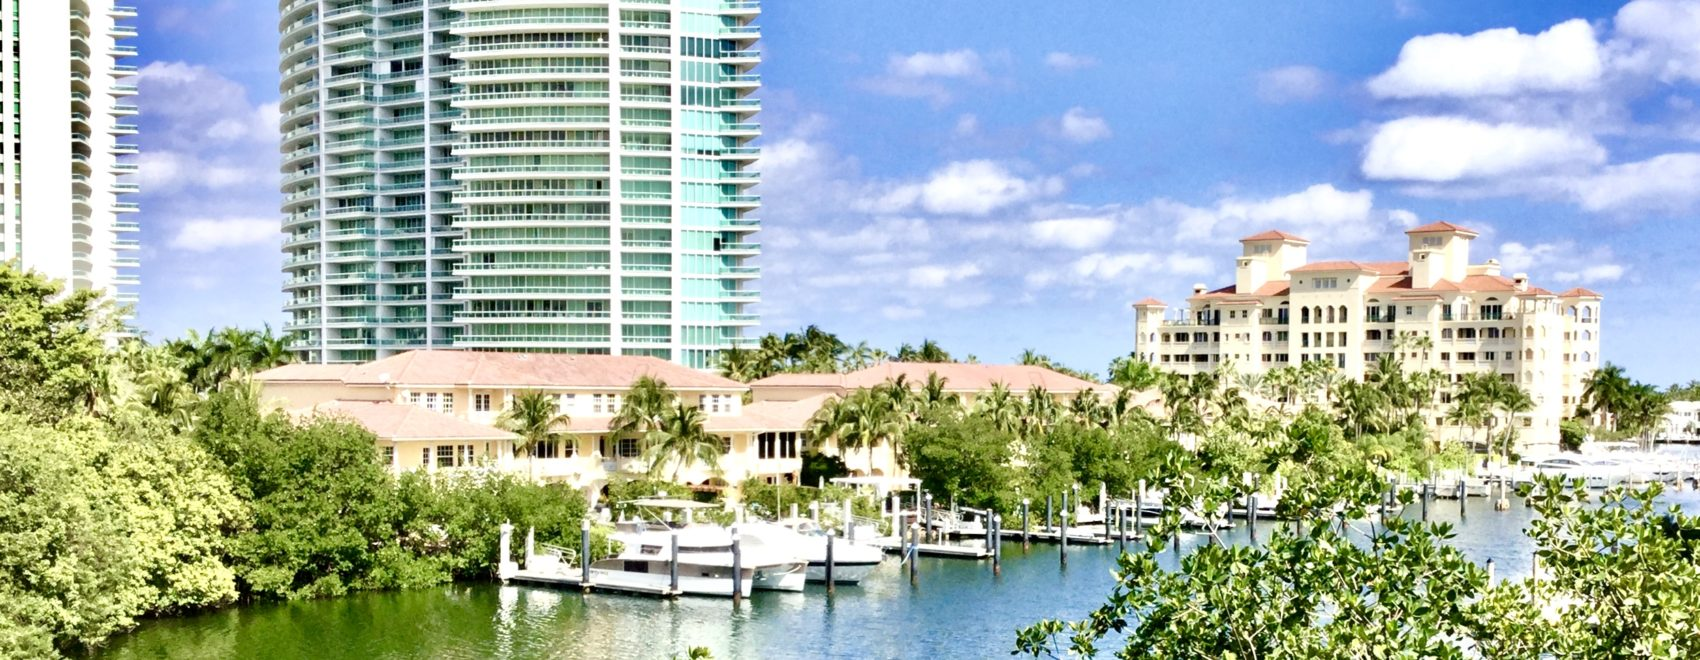 Aventura Condo The Yacht Club